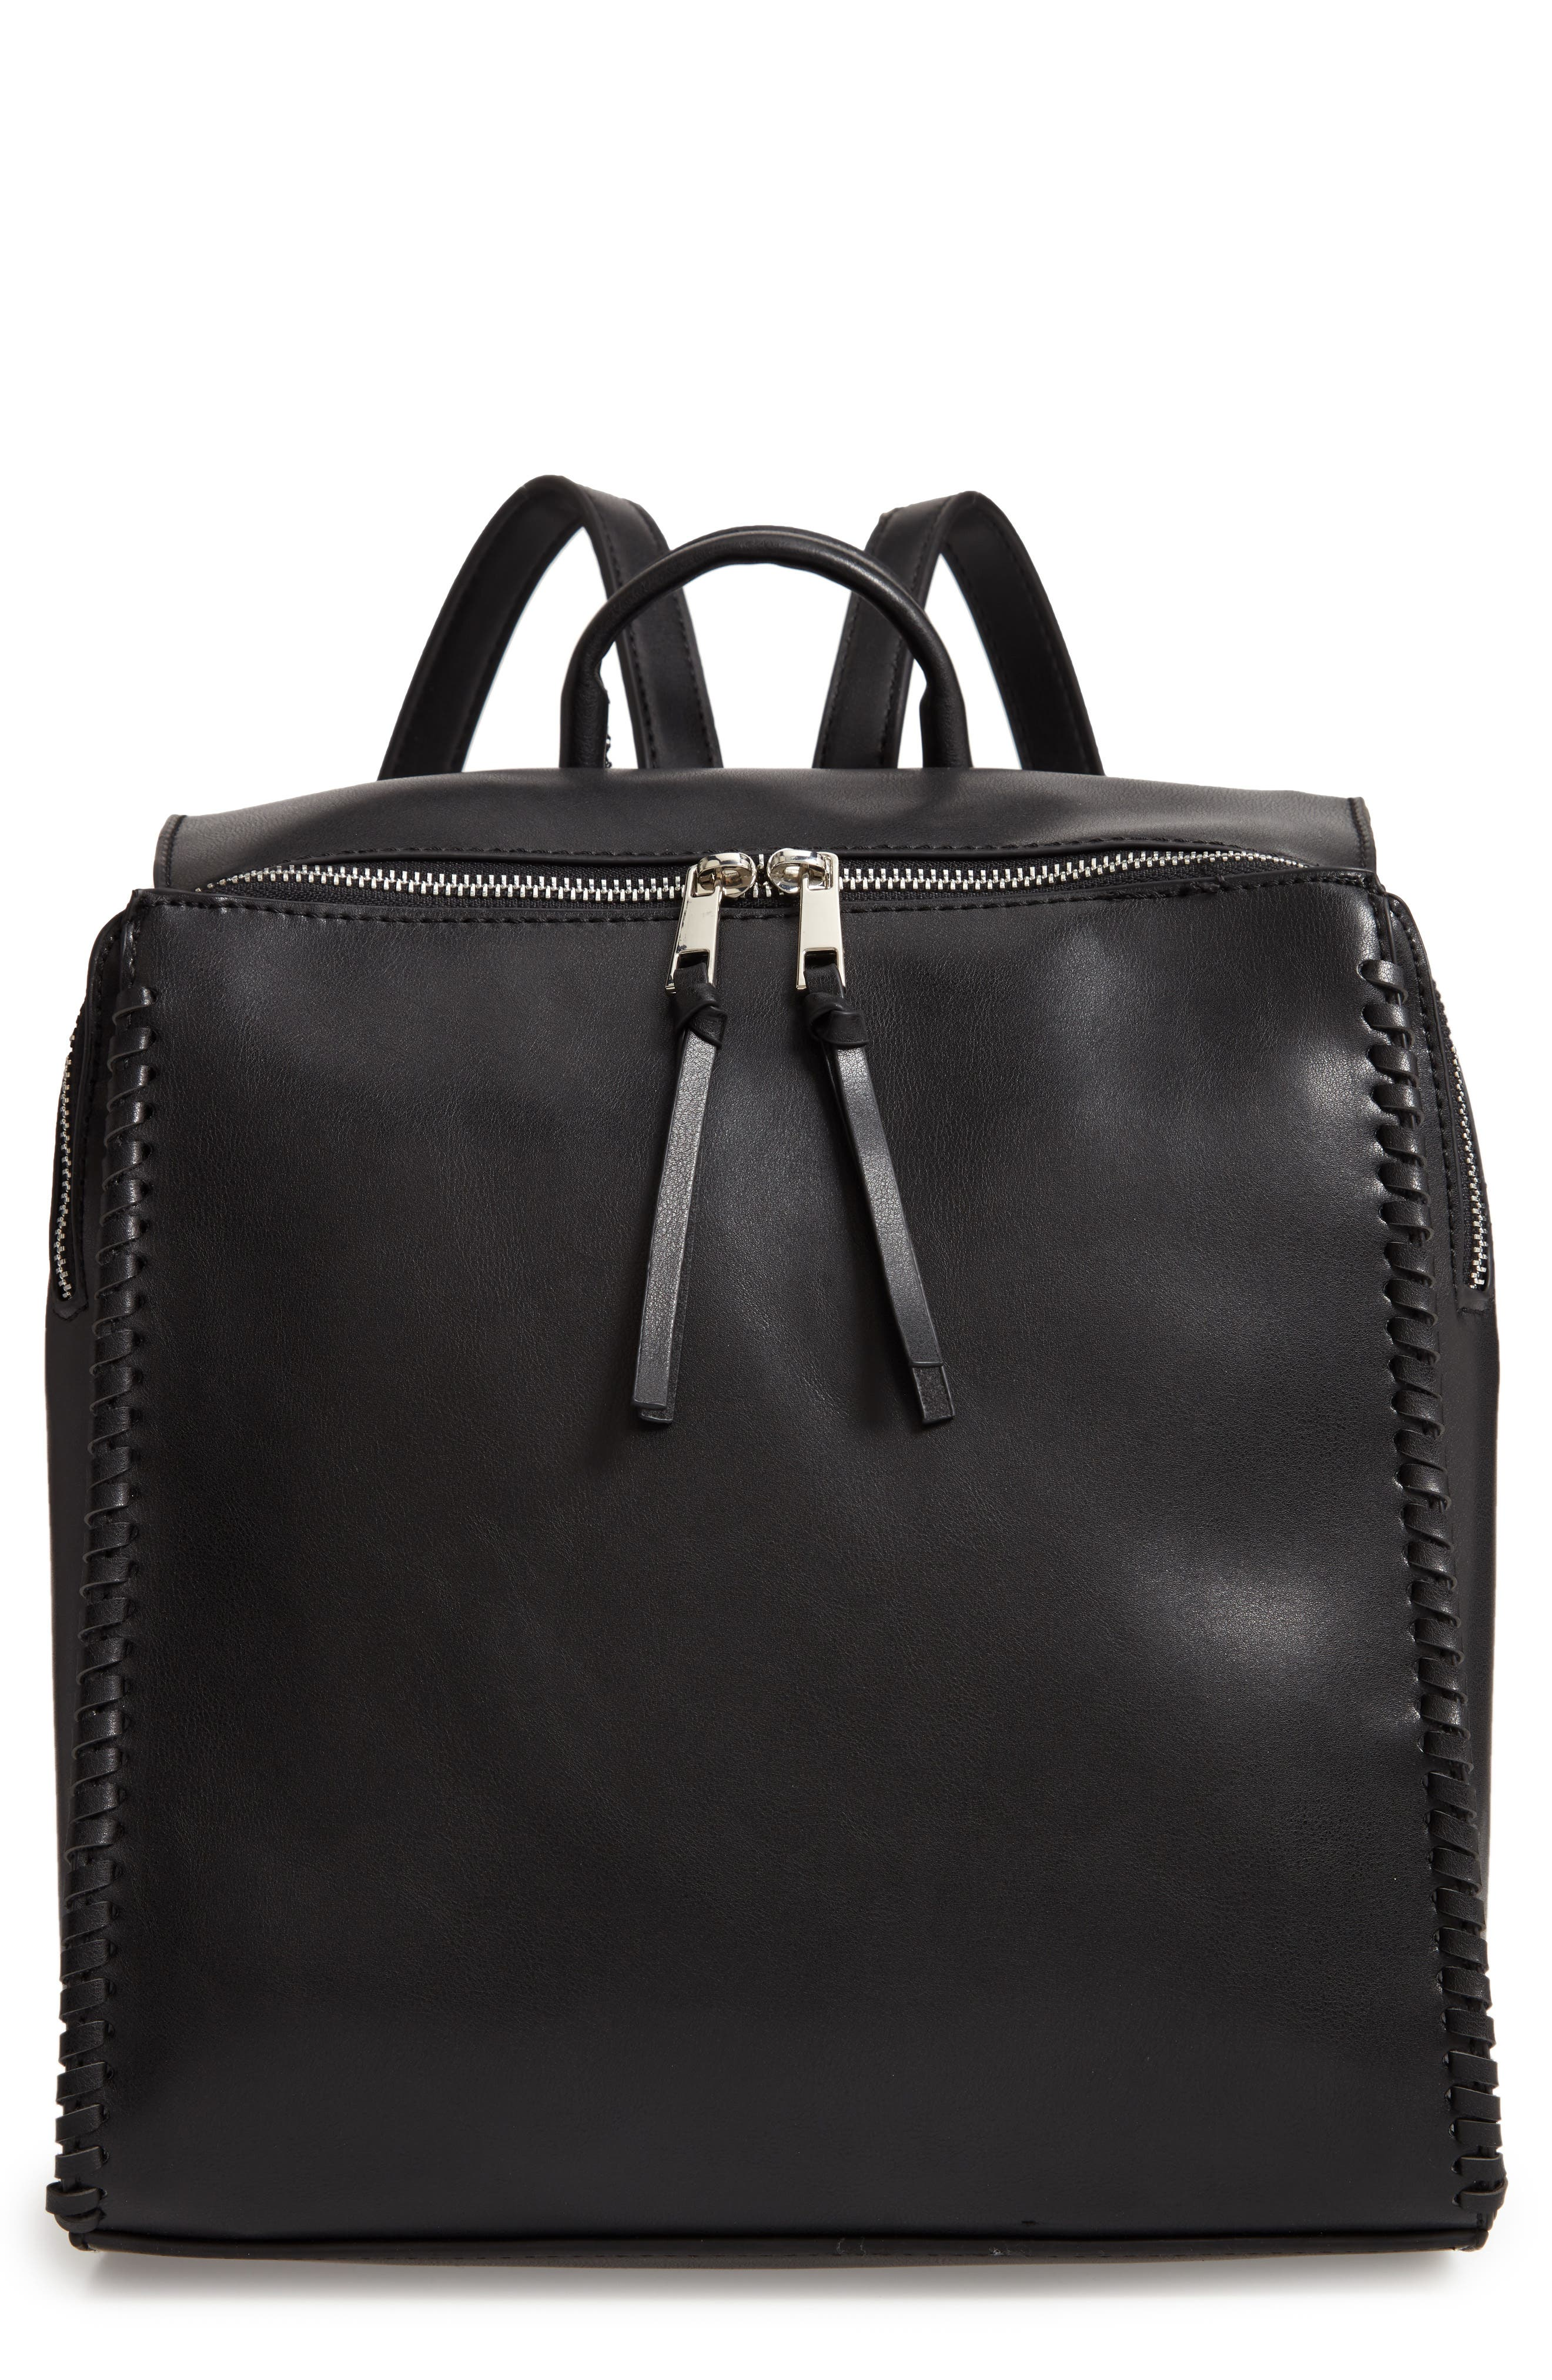 Whipstitch Faux Leather Square Backpack,                         Main,                         color, 001